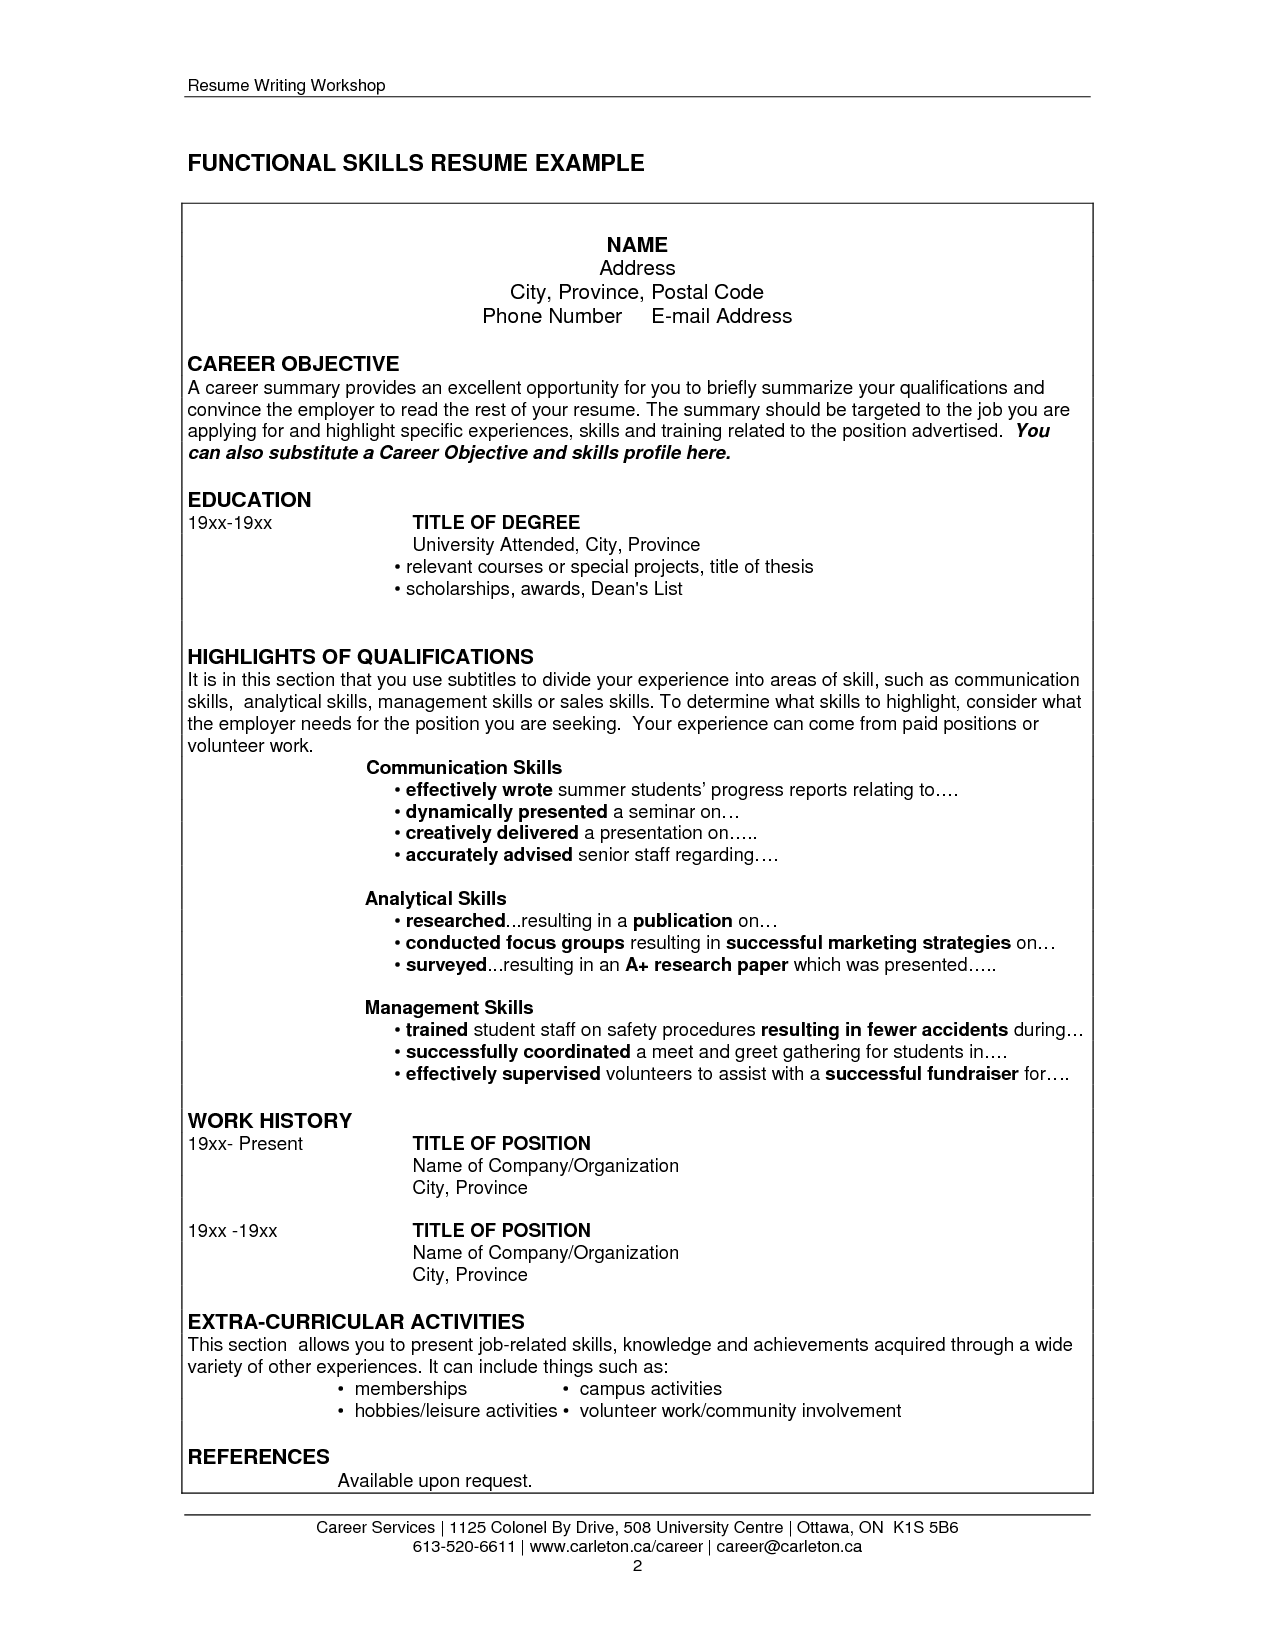 Resume Examples Of Skills Job Resume Communication Skills Http Resumecareer